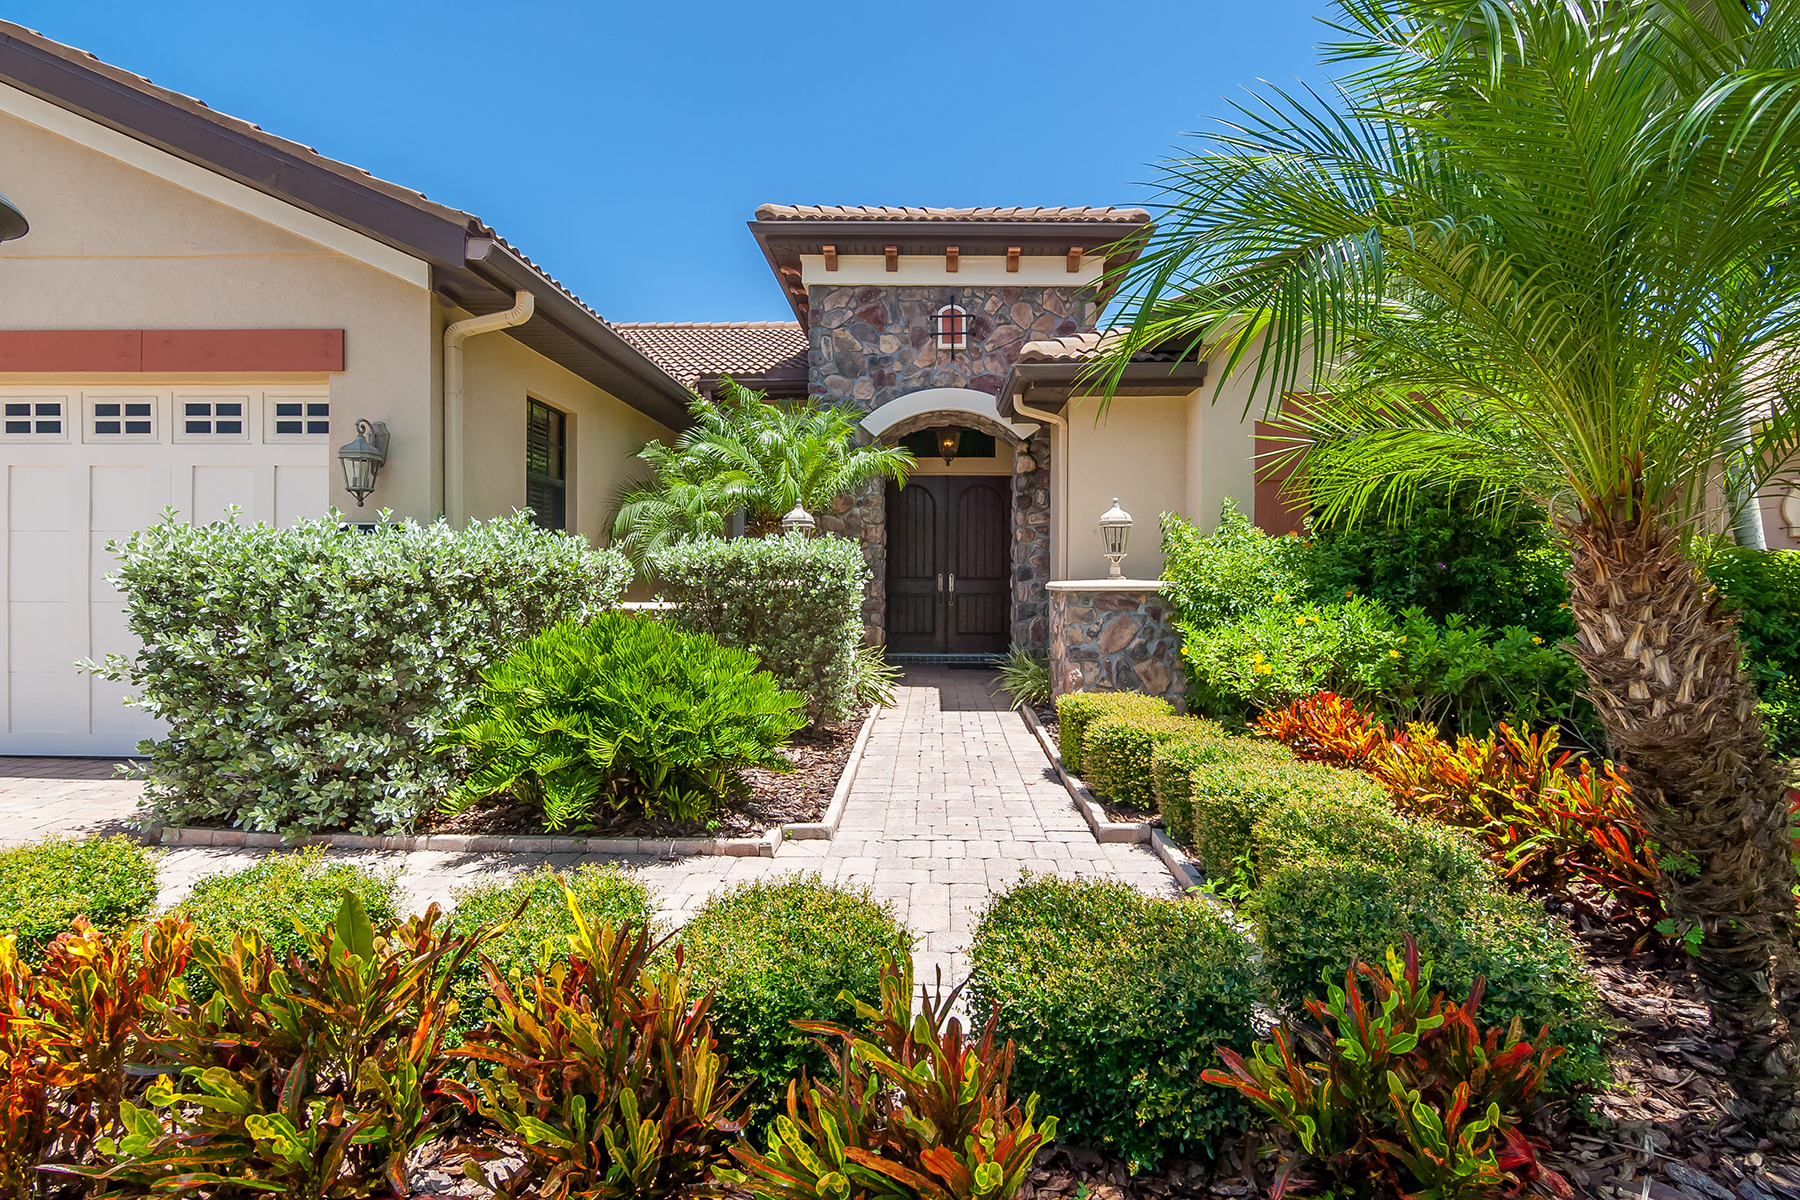 Single Family Home for Sale at COUNTRY CLUB EAST 7813 Valderrama Way Lakewood Ranch, Florida, 34202 United States